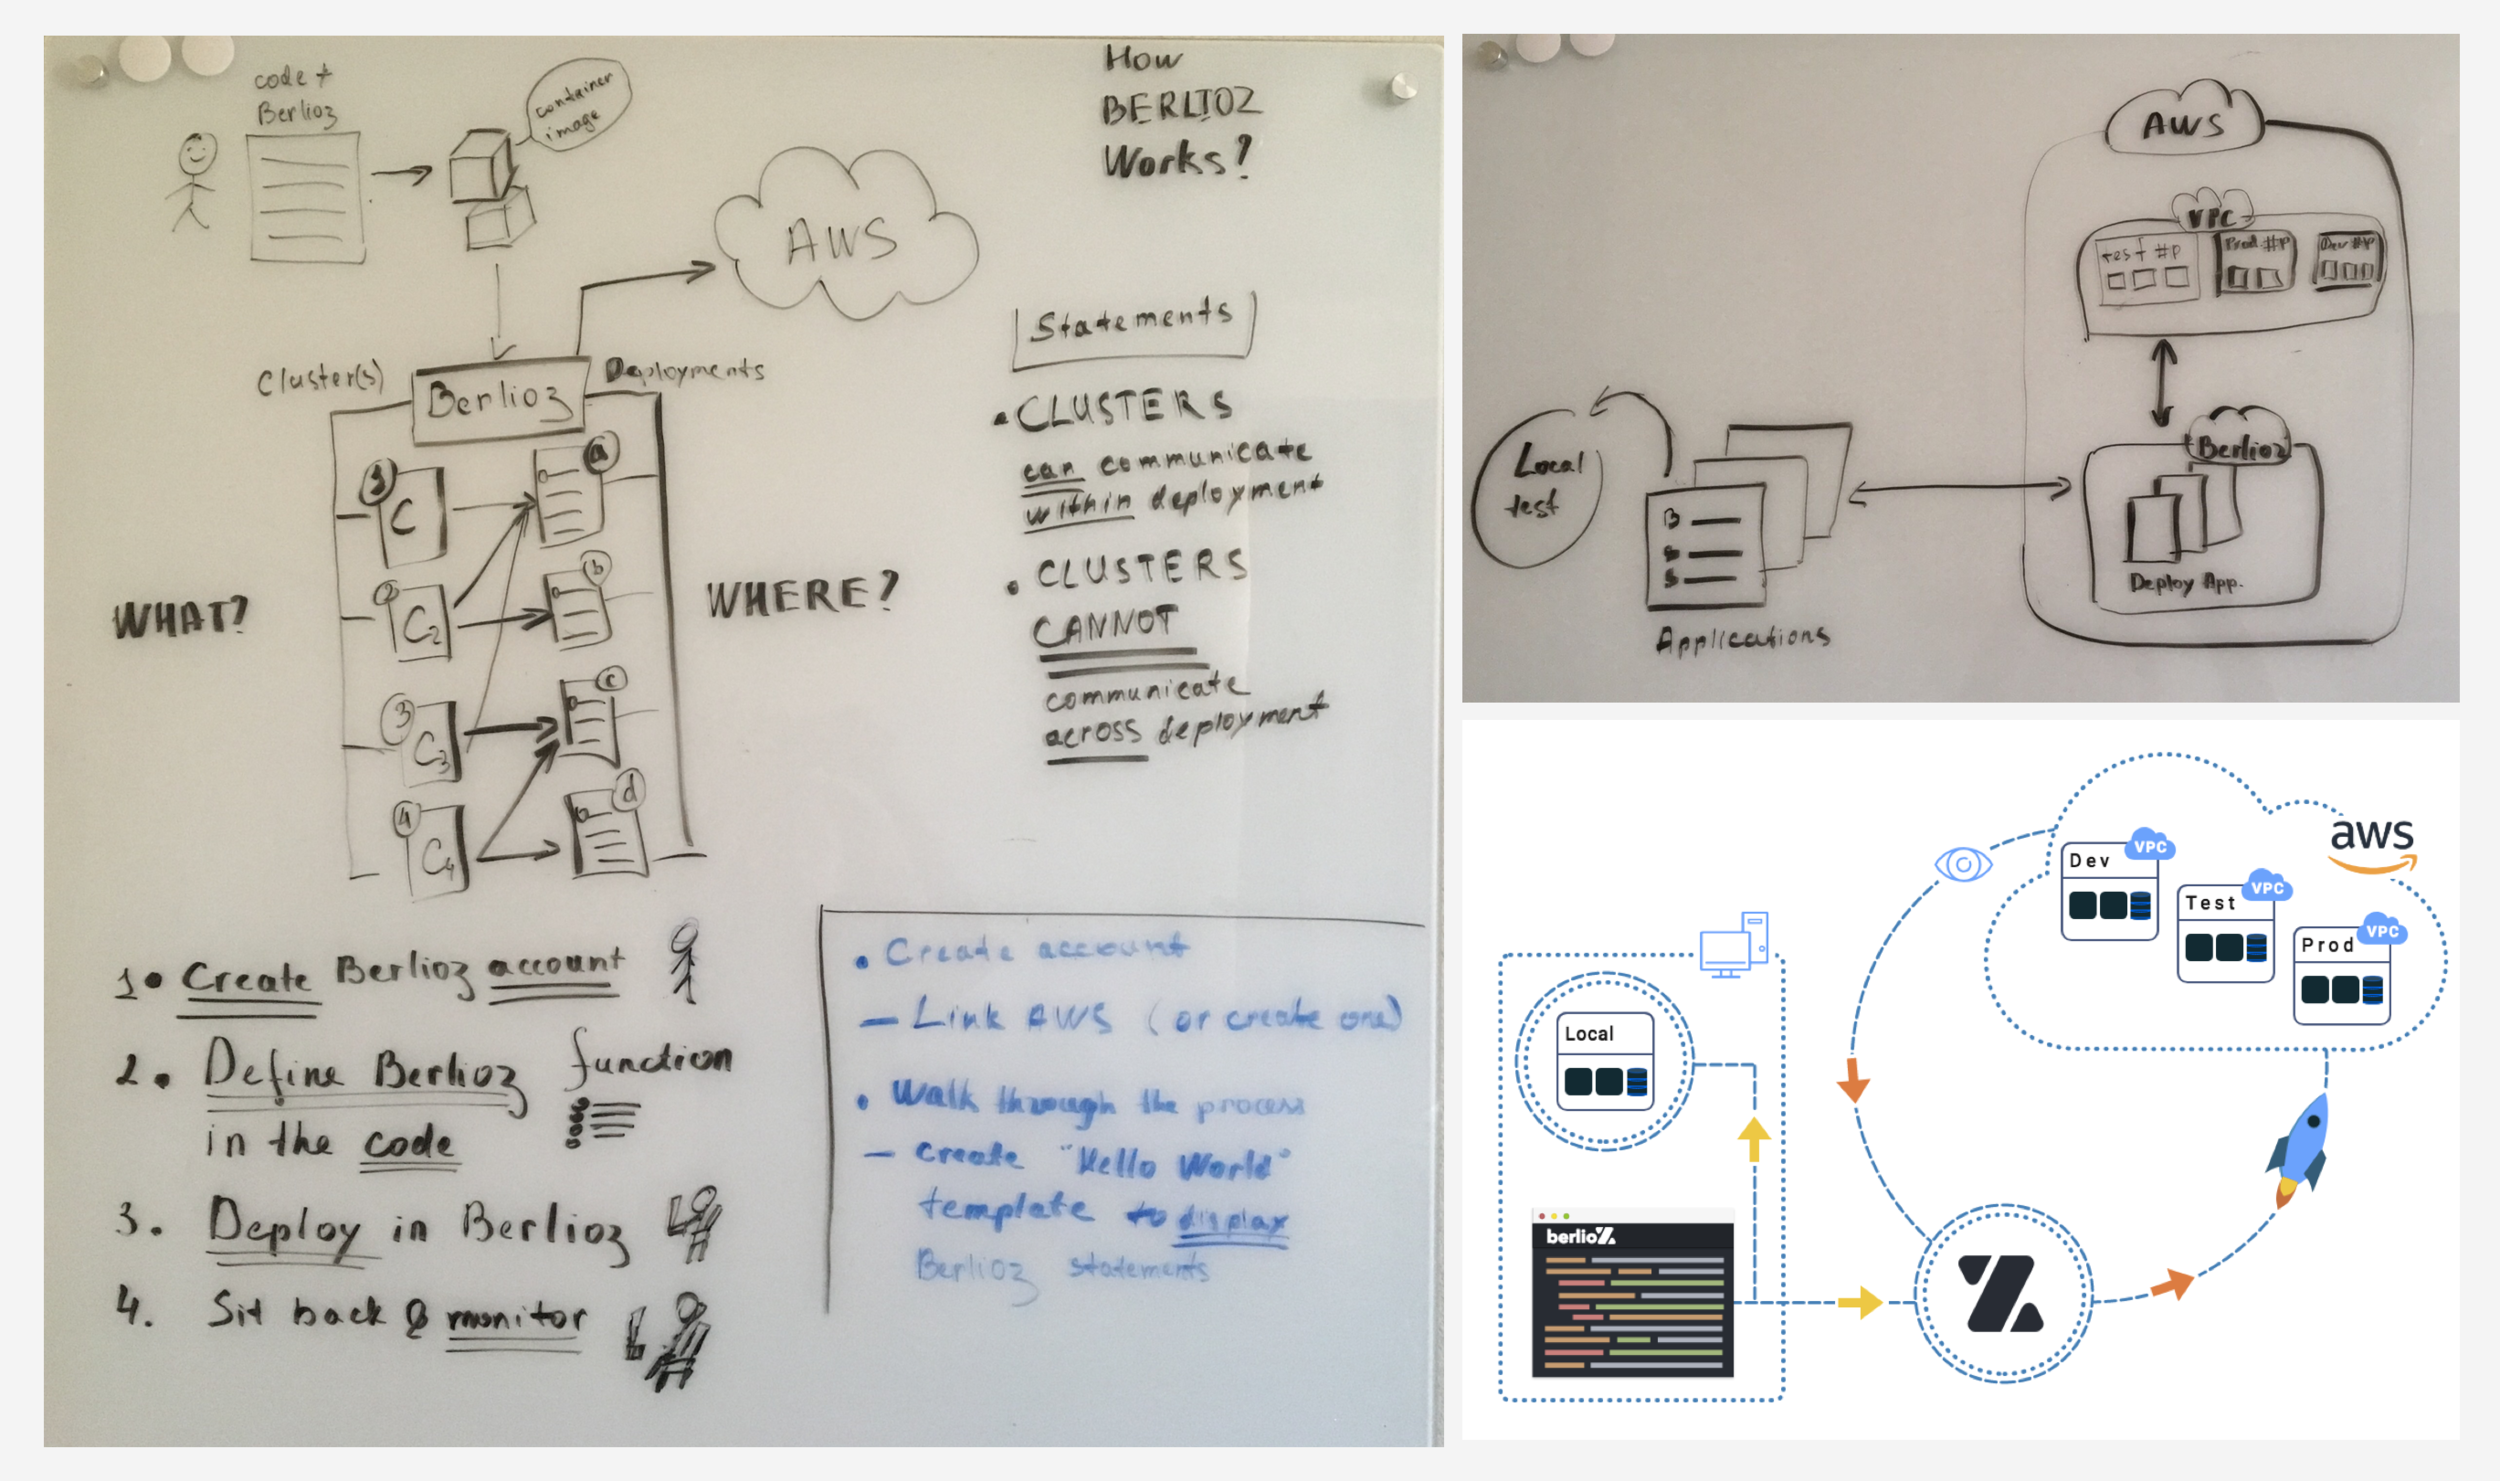 Analyzing the user journey